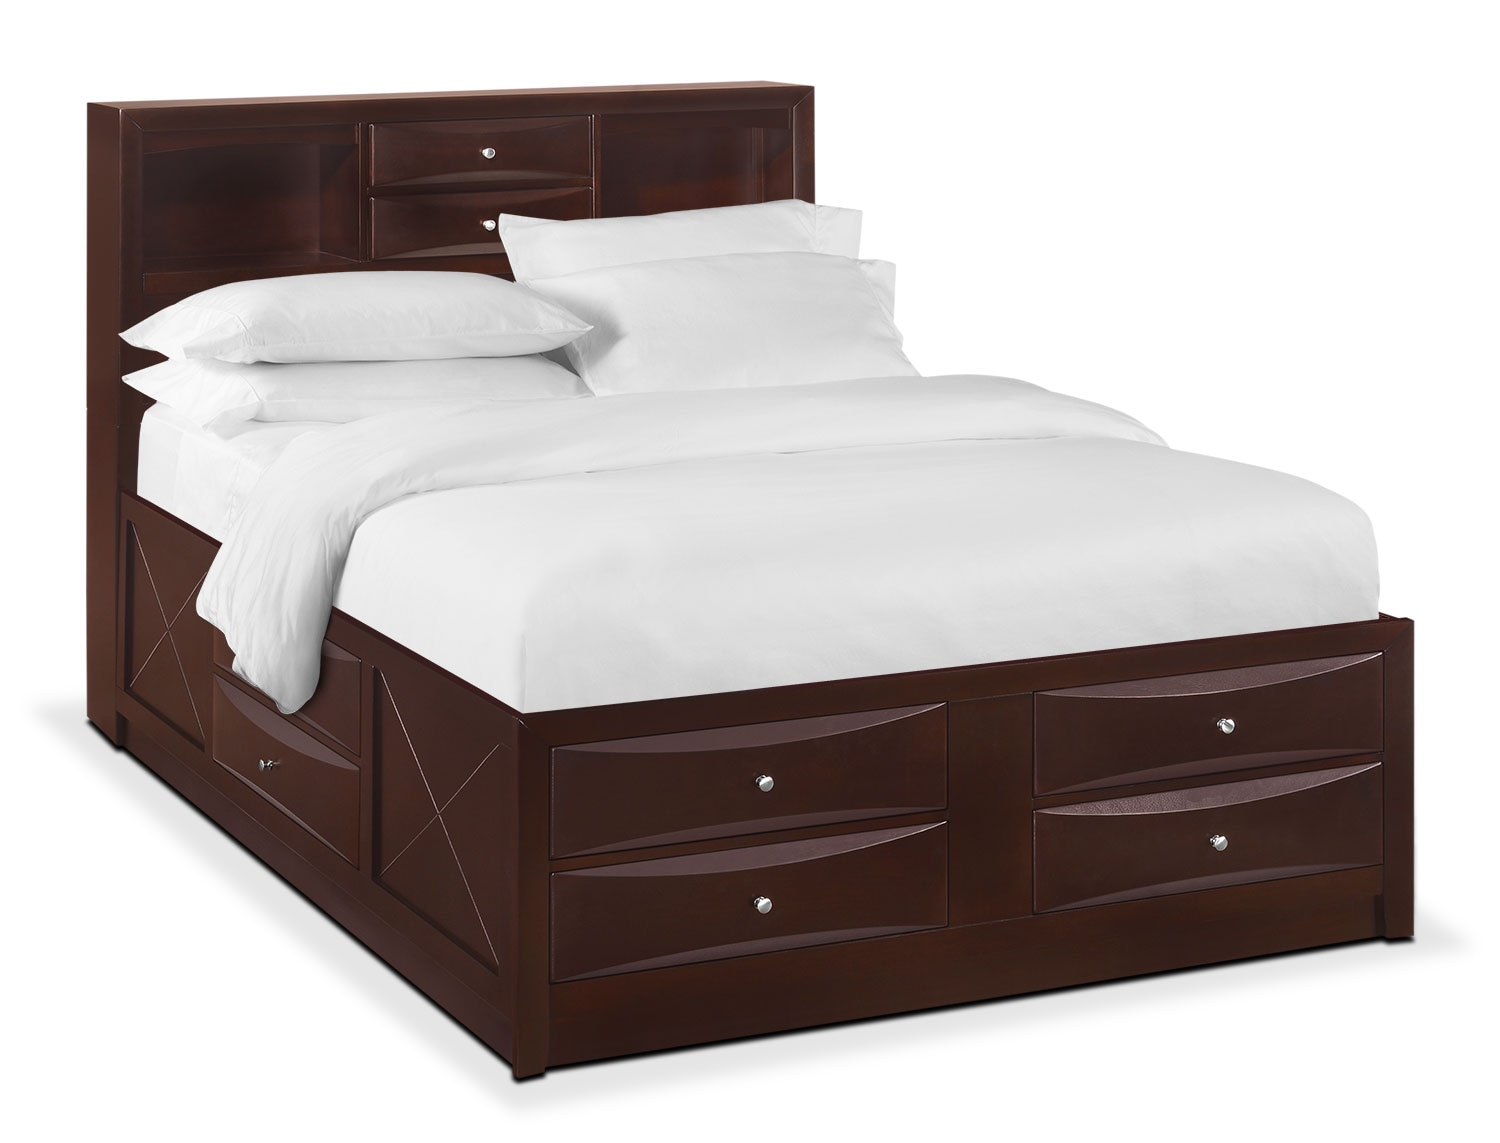 Bedroom Furniture - Braden King Bookcase Bed with Storage - Merlot